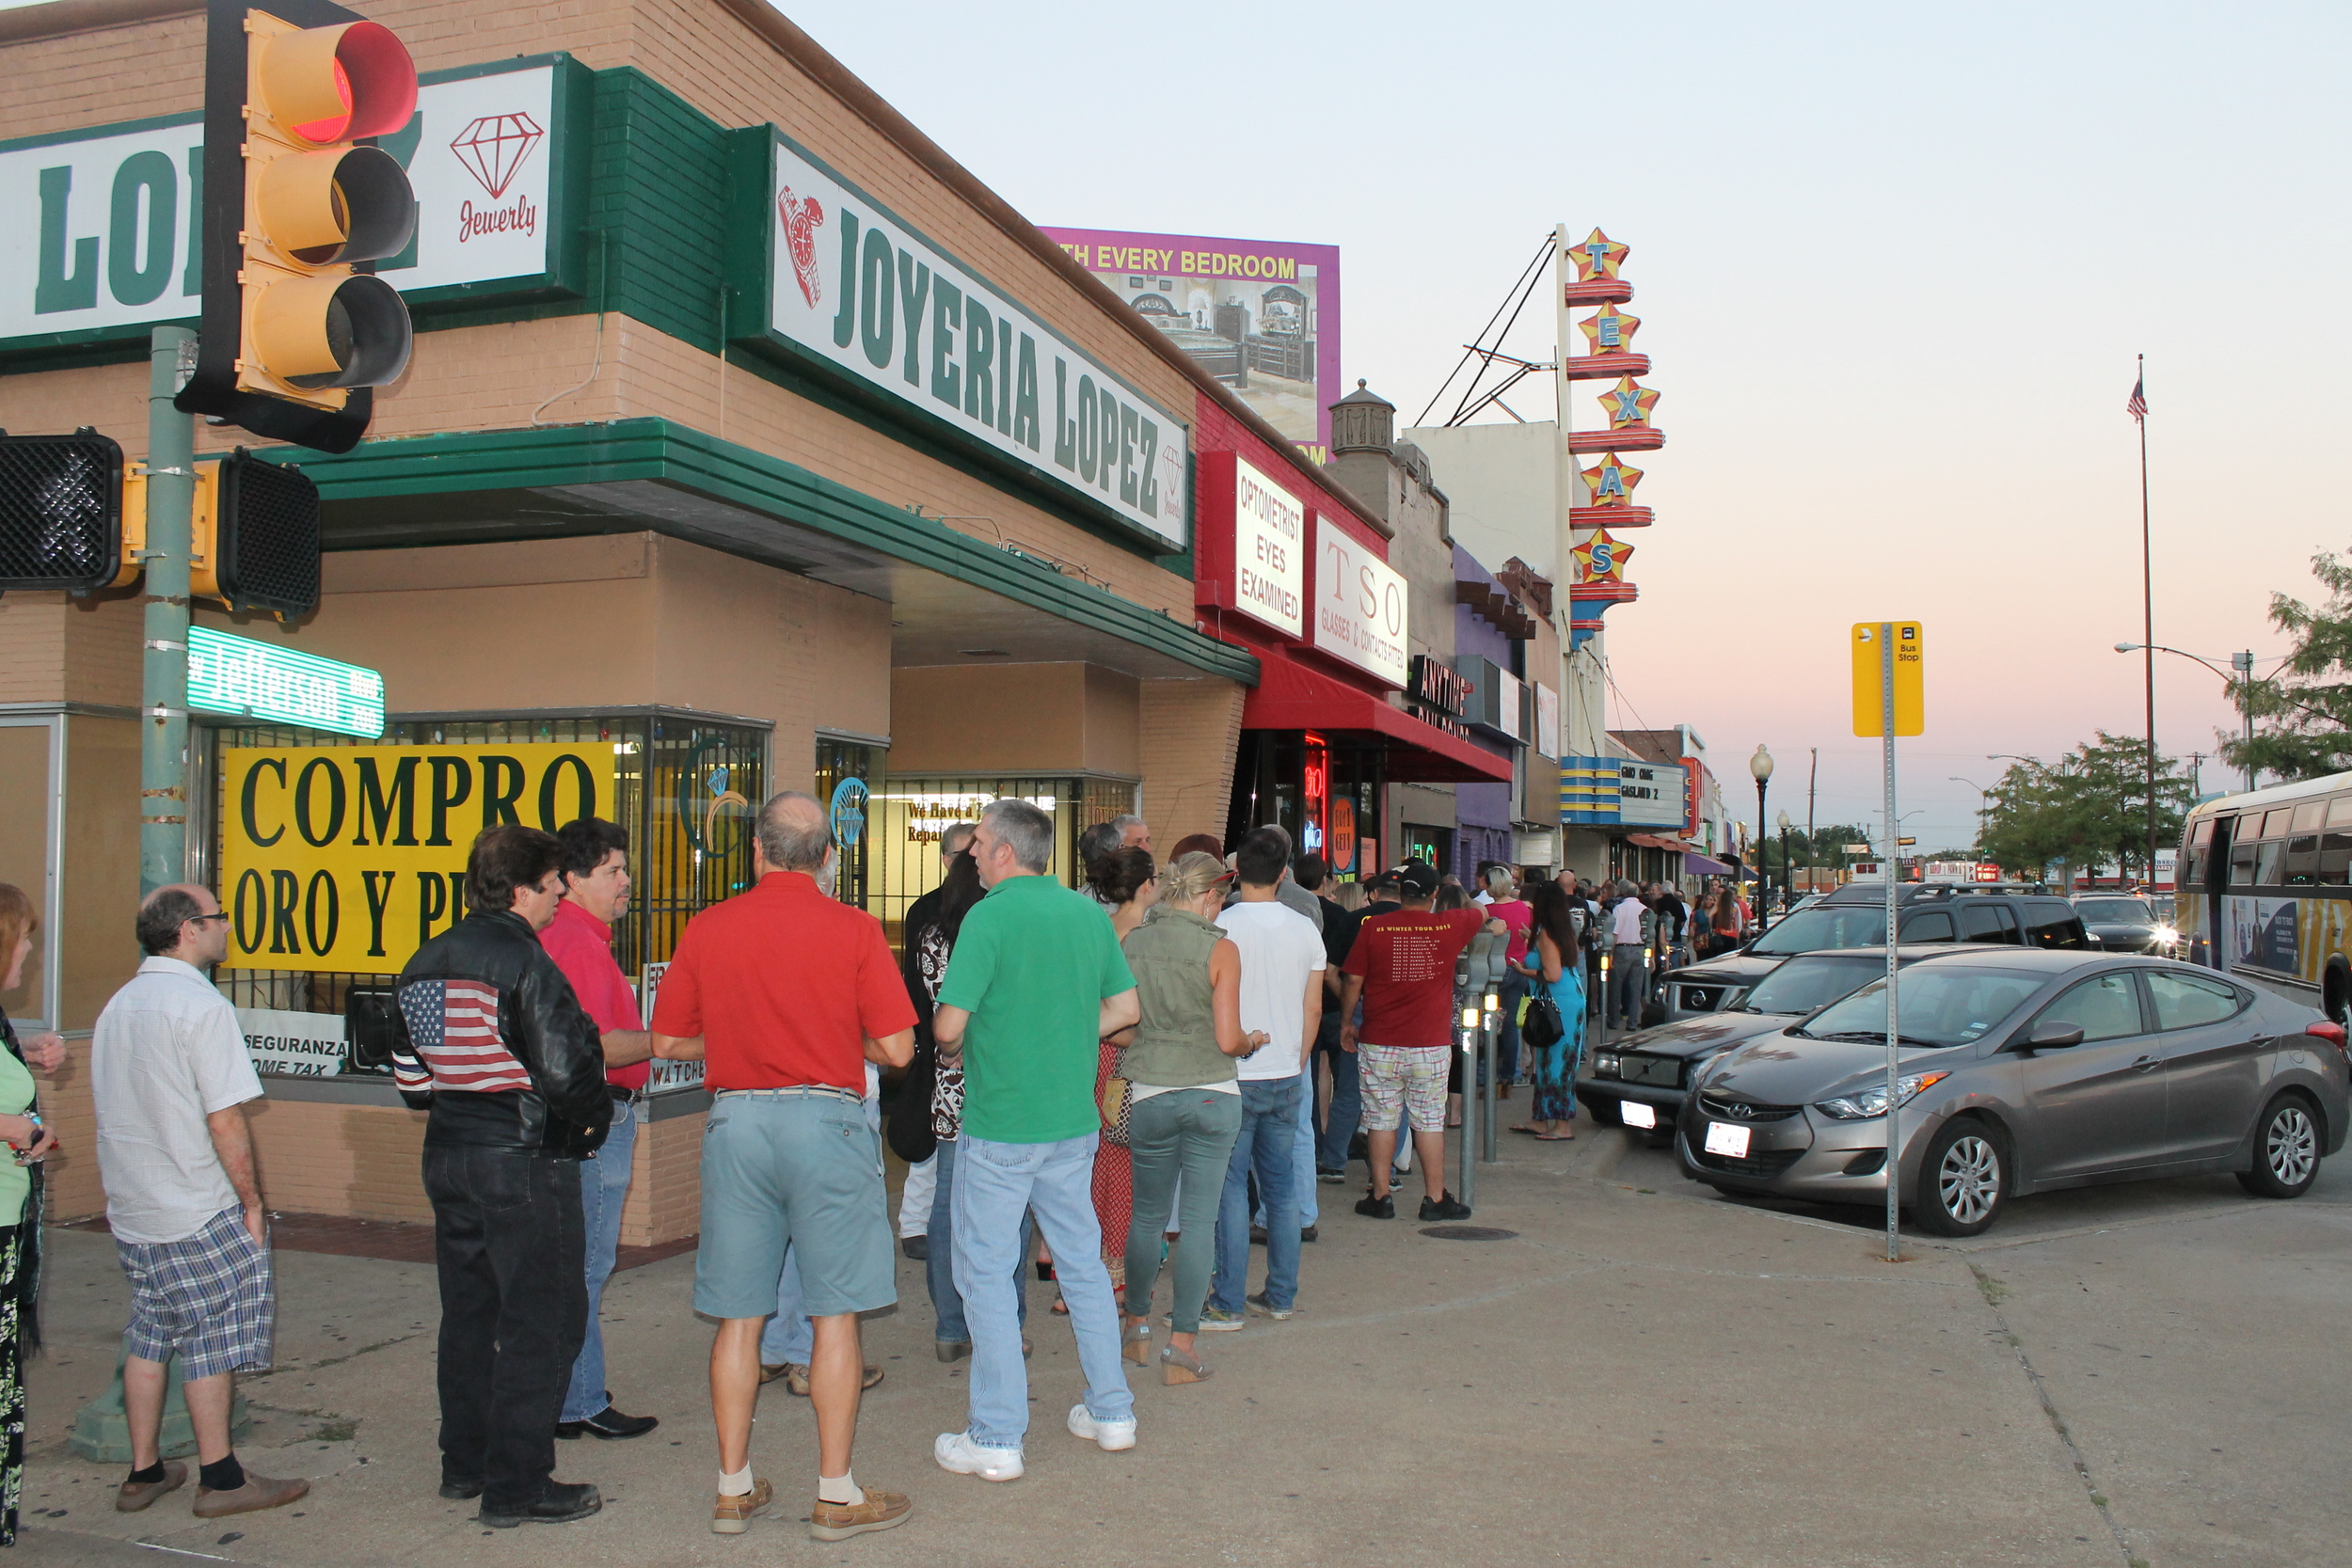 A line around the block to get into the premiere at the historic Texas Theatre, September 26, 2013.